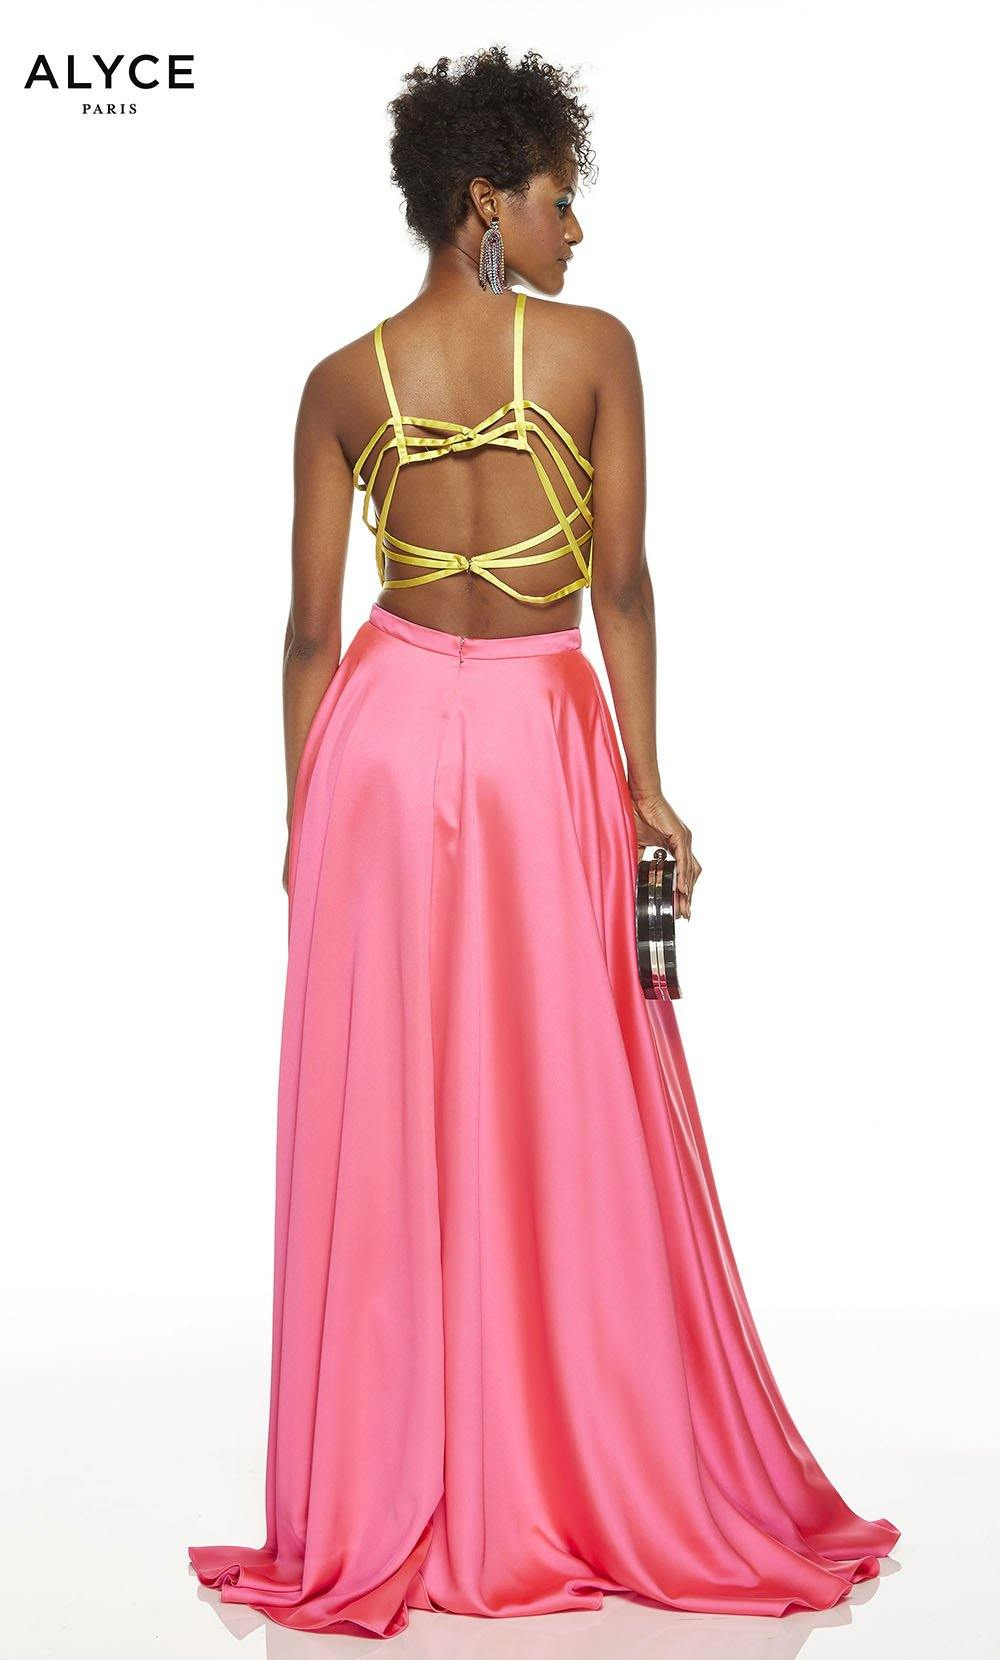 Lemon Lime-Barbie Pink two piece prom dress with a yellow halter top and a pink skirt